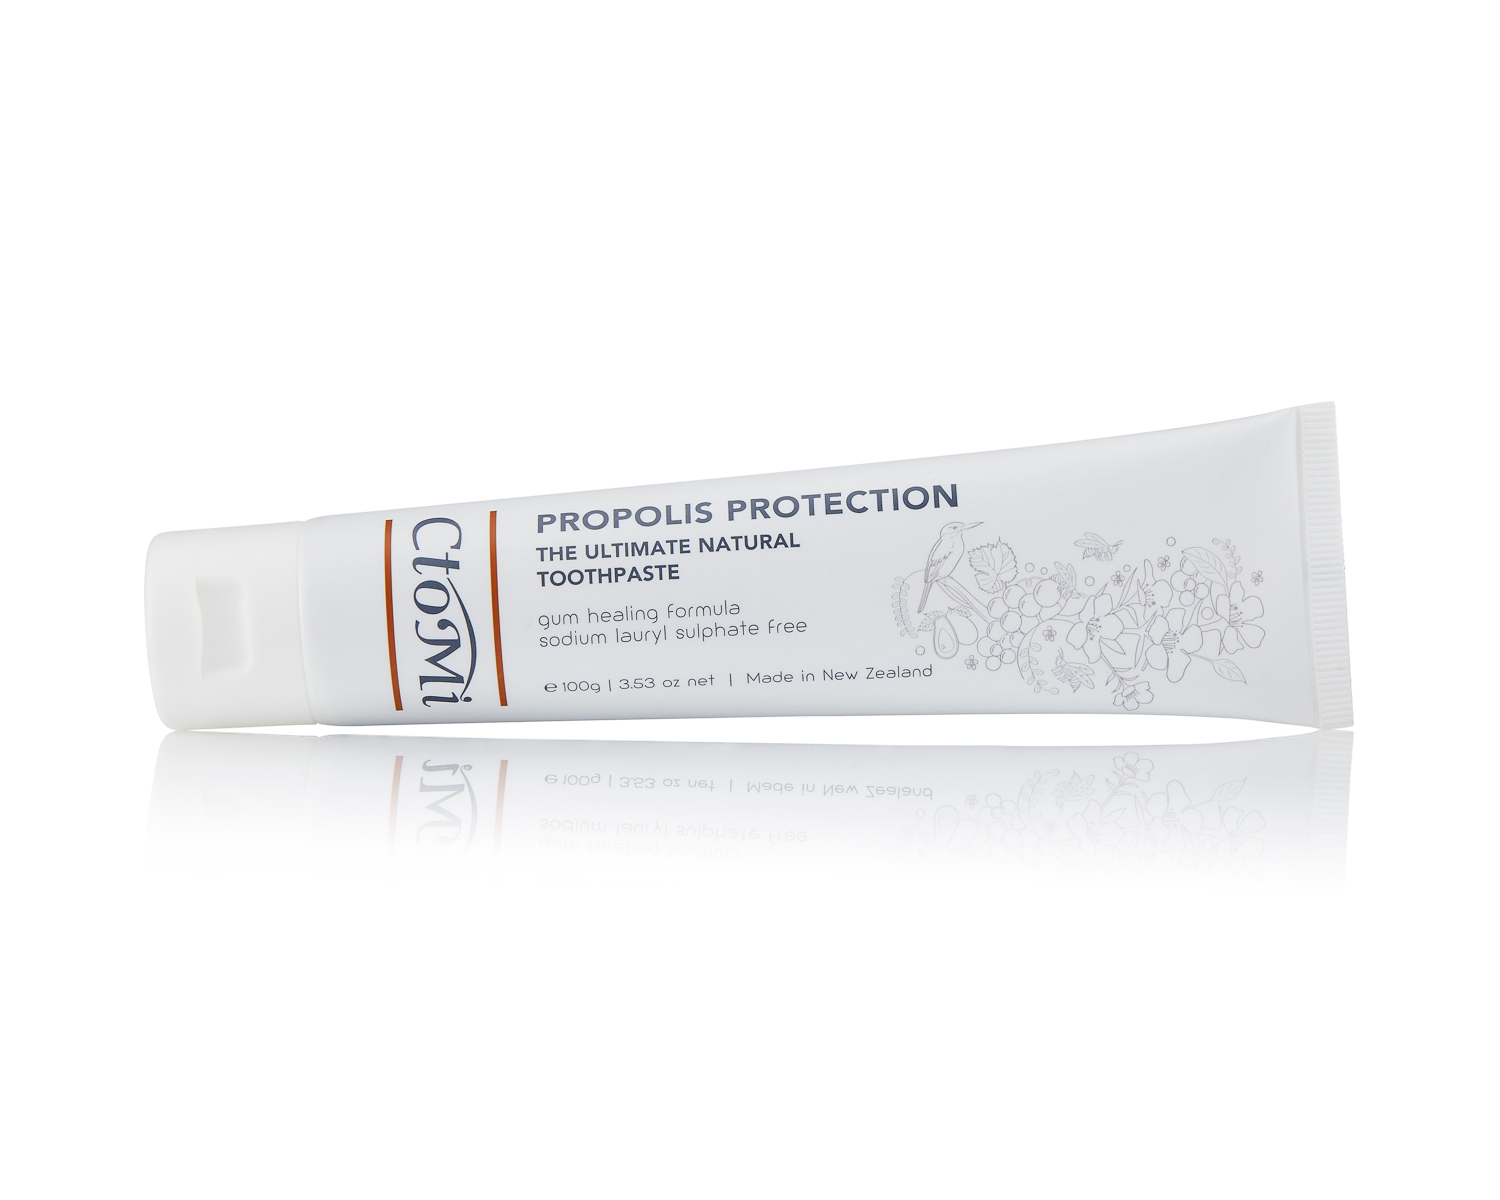 PROPOLIS PROTECTION TOOTHPASTE